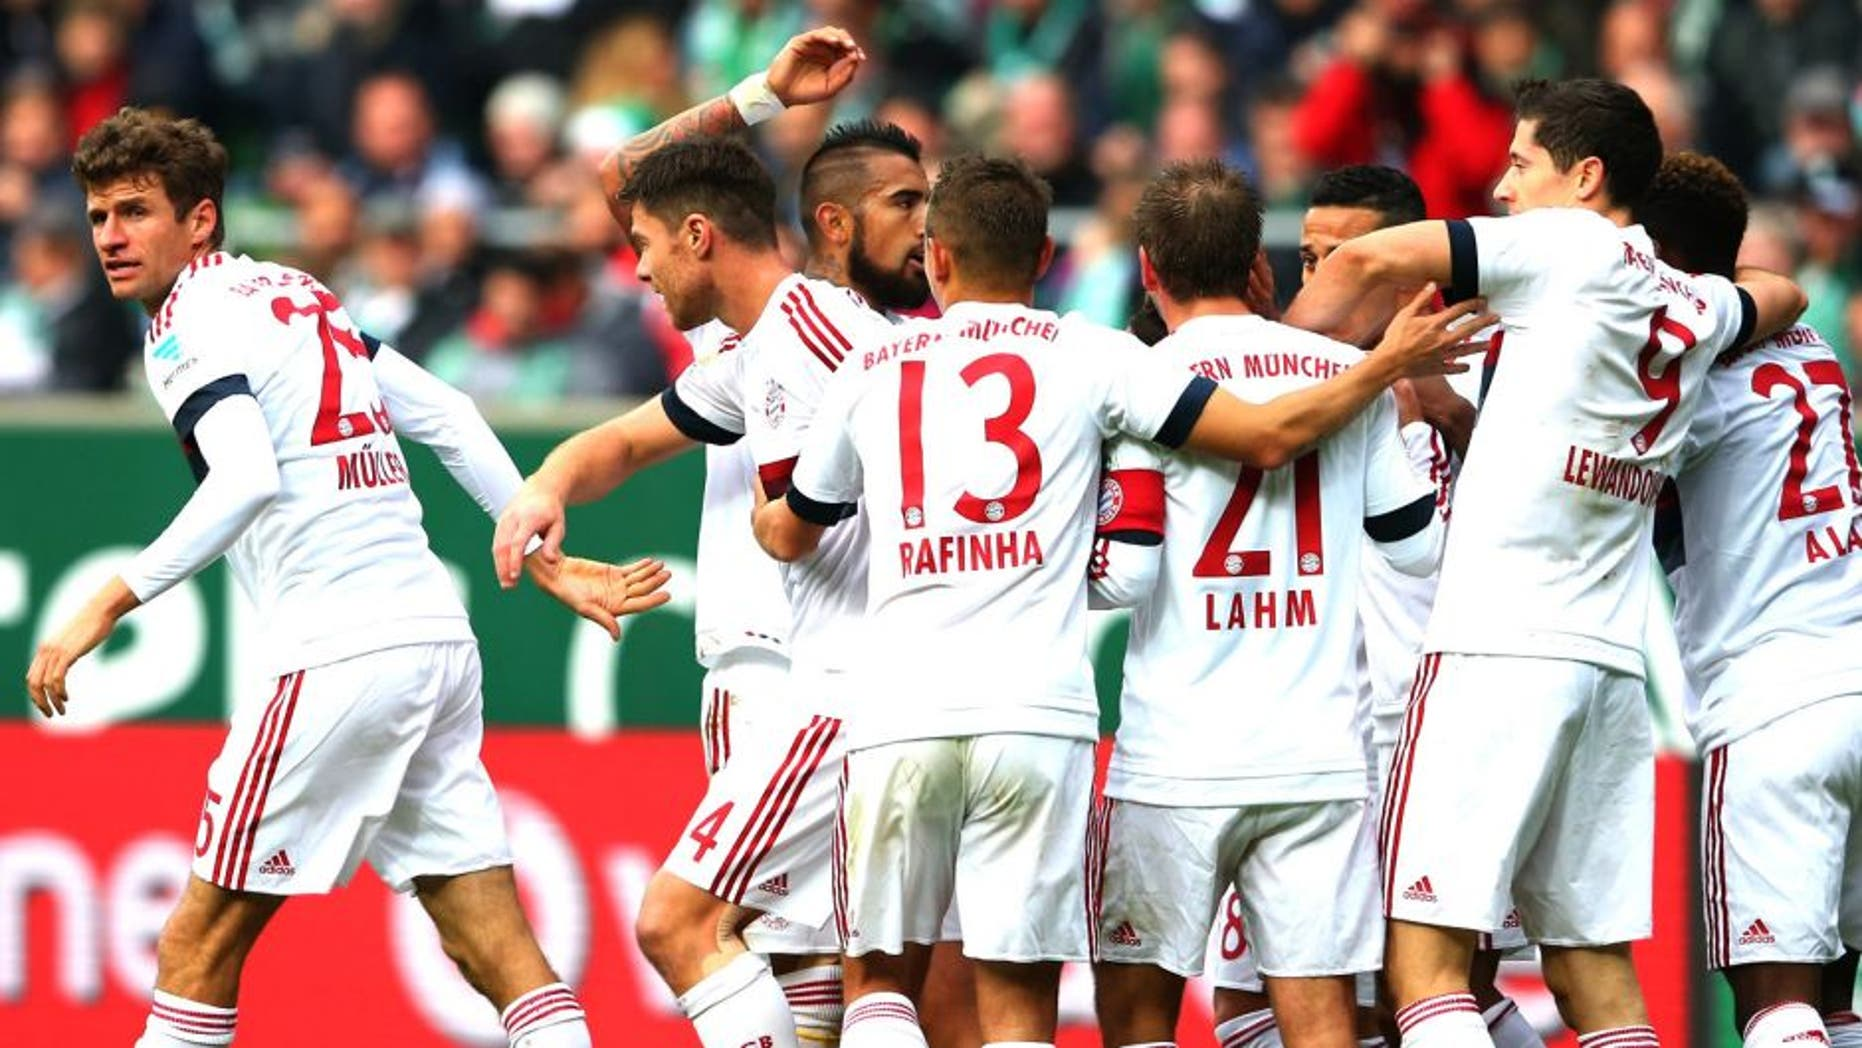 BREMEN, GERMANY - OCTOBER 17: Thomas Mueller (L) of Muenchen celebrates scoring the opening goal with his team mates during the Bundesliga match between SV Werder Bremen and FC Bayern Muenchen at Weserstadion on October 17, 2015 in Bremen, Germany. (Photo by Alexander Hassenstein/Bongarts/Getty Images)